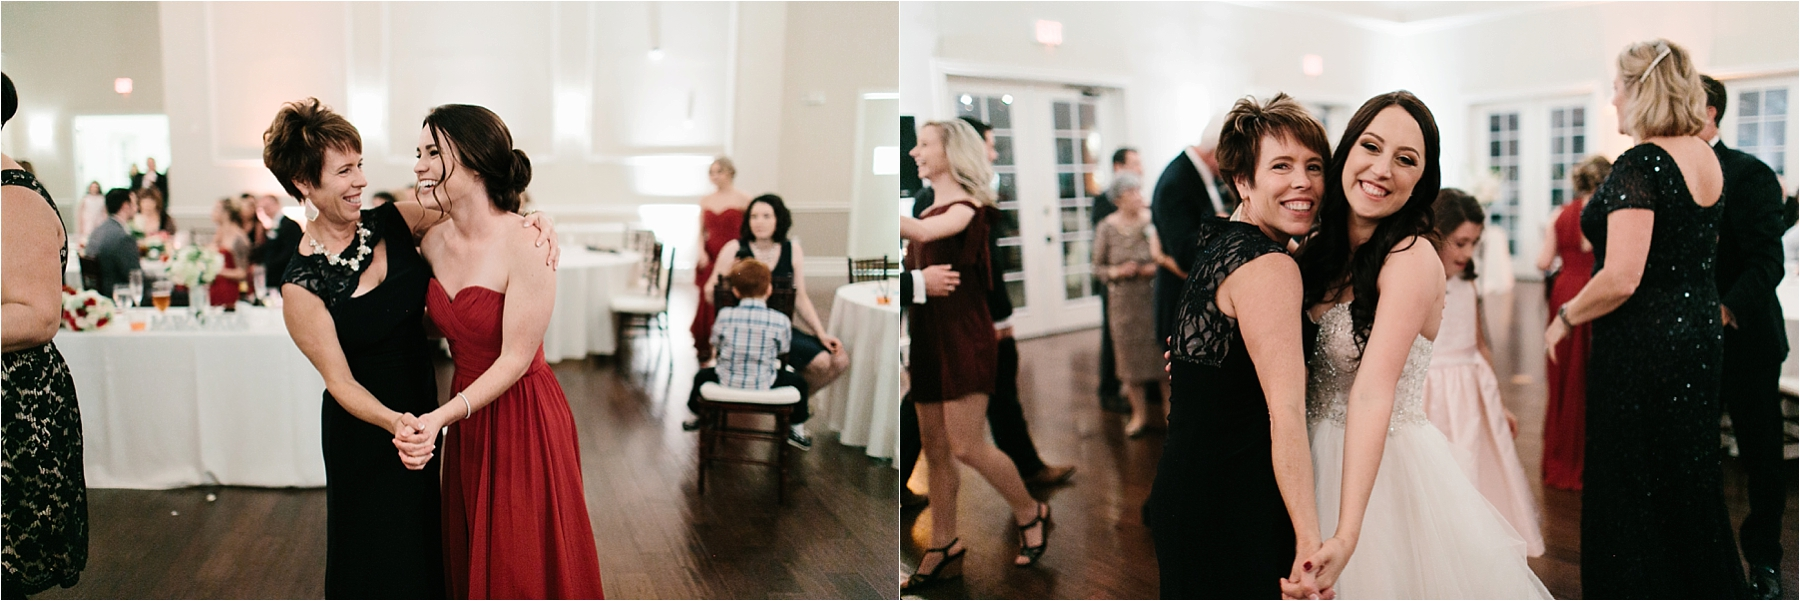 Chrissy + Zach __ The Windsor at Hebron Park Wedding by North Texas Wedding Photographer _ Rachel Meagan Photography __102